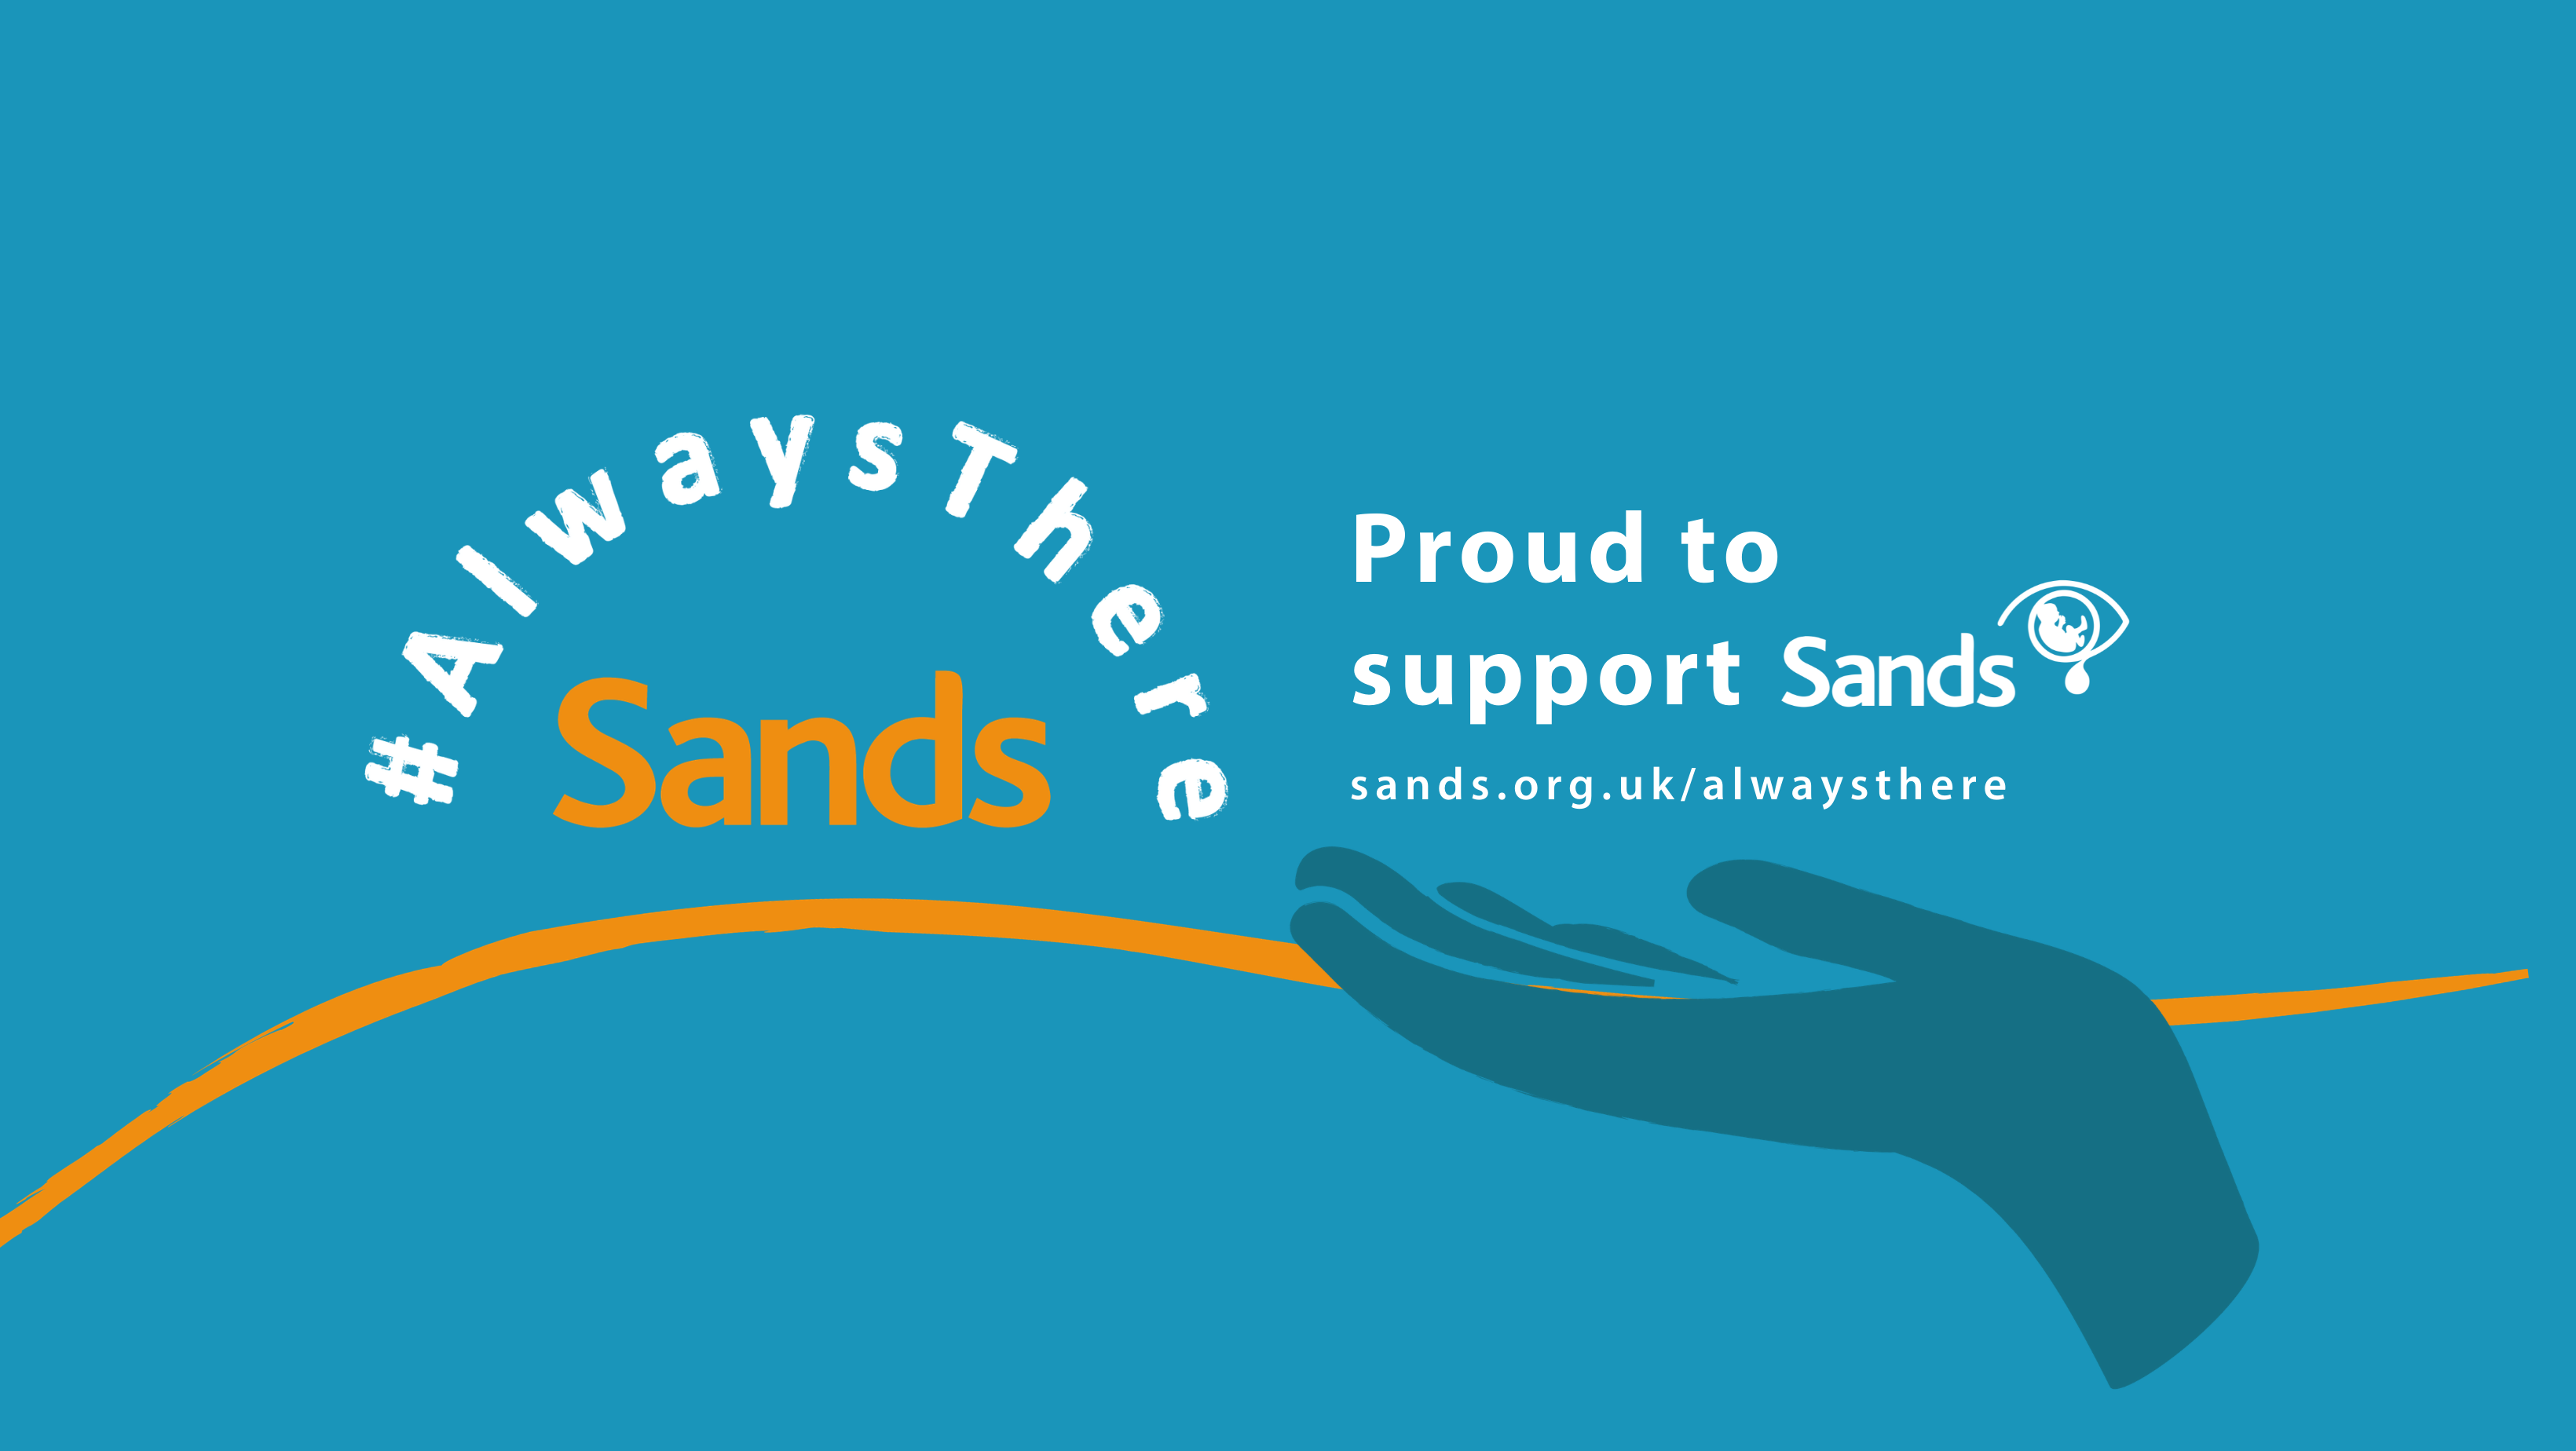 Sands Awareness Month Always There campaign facebook banner for supporters